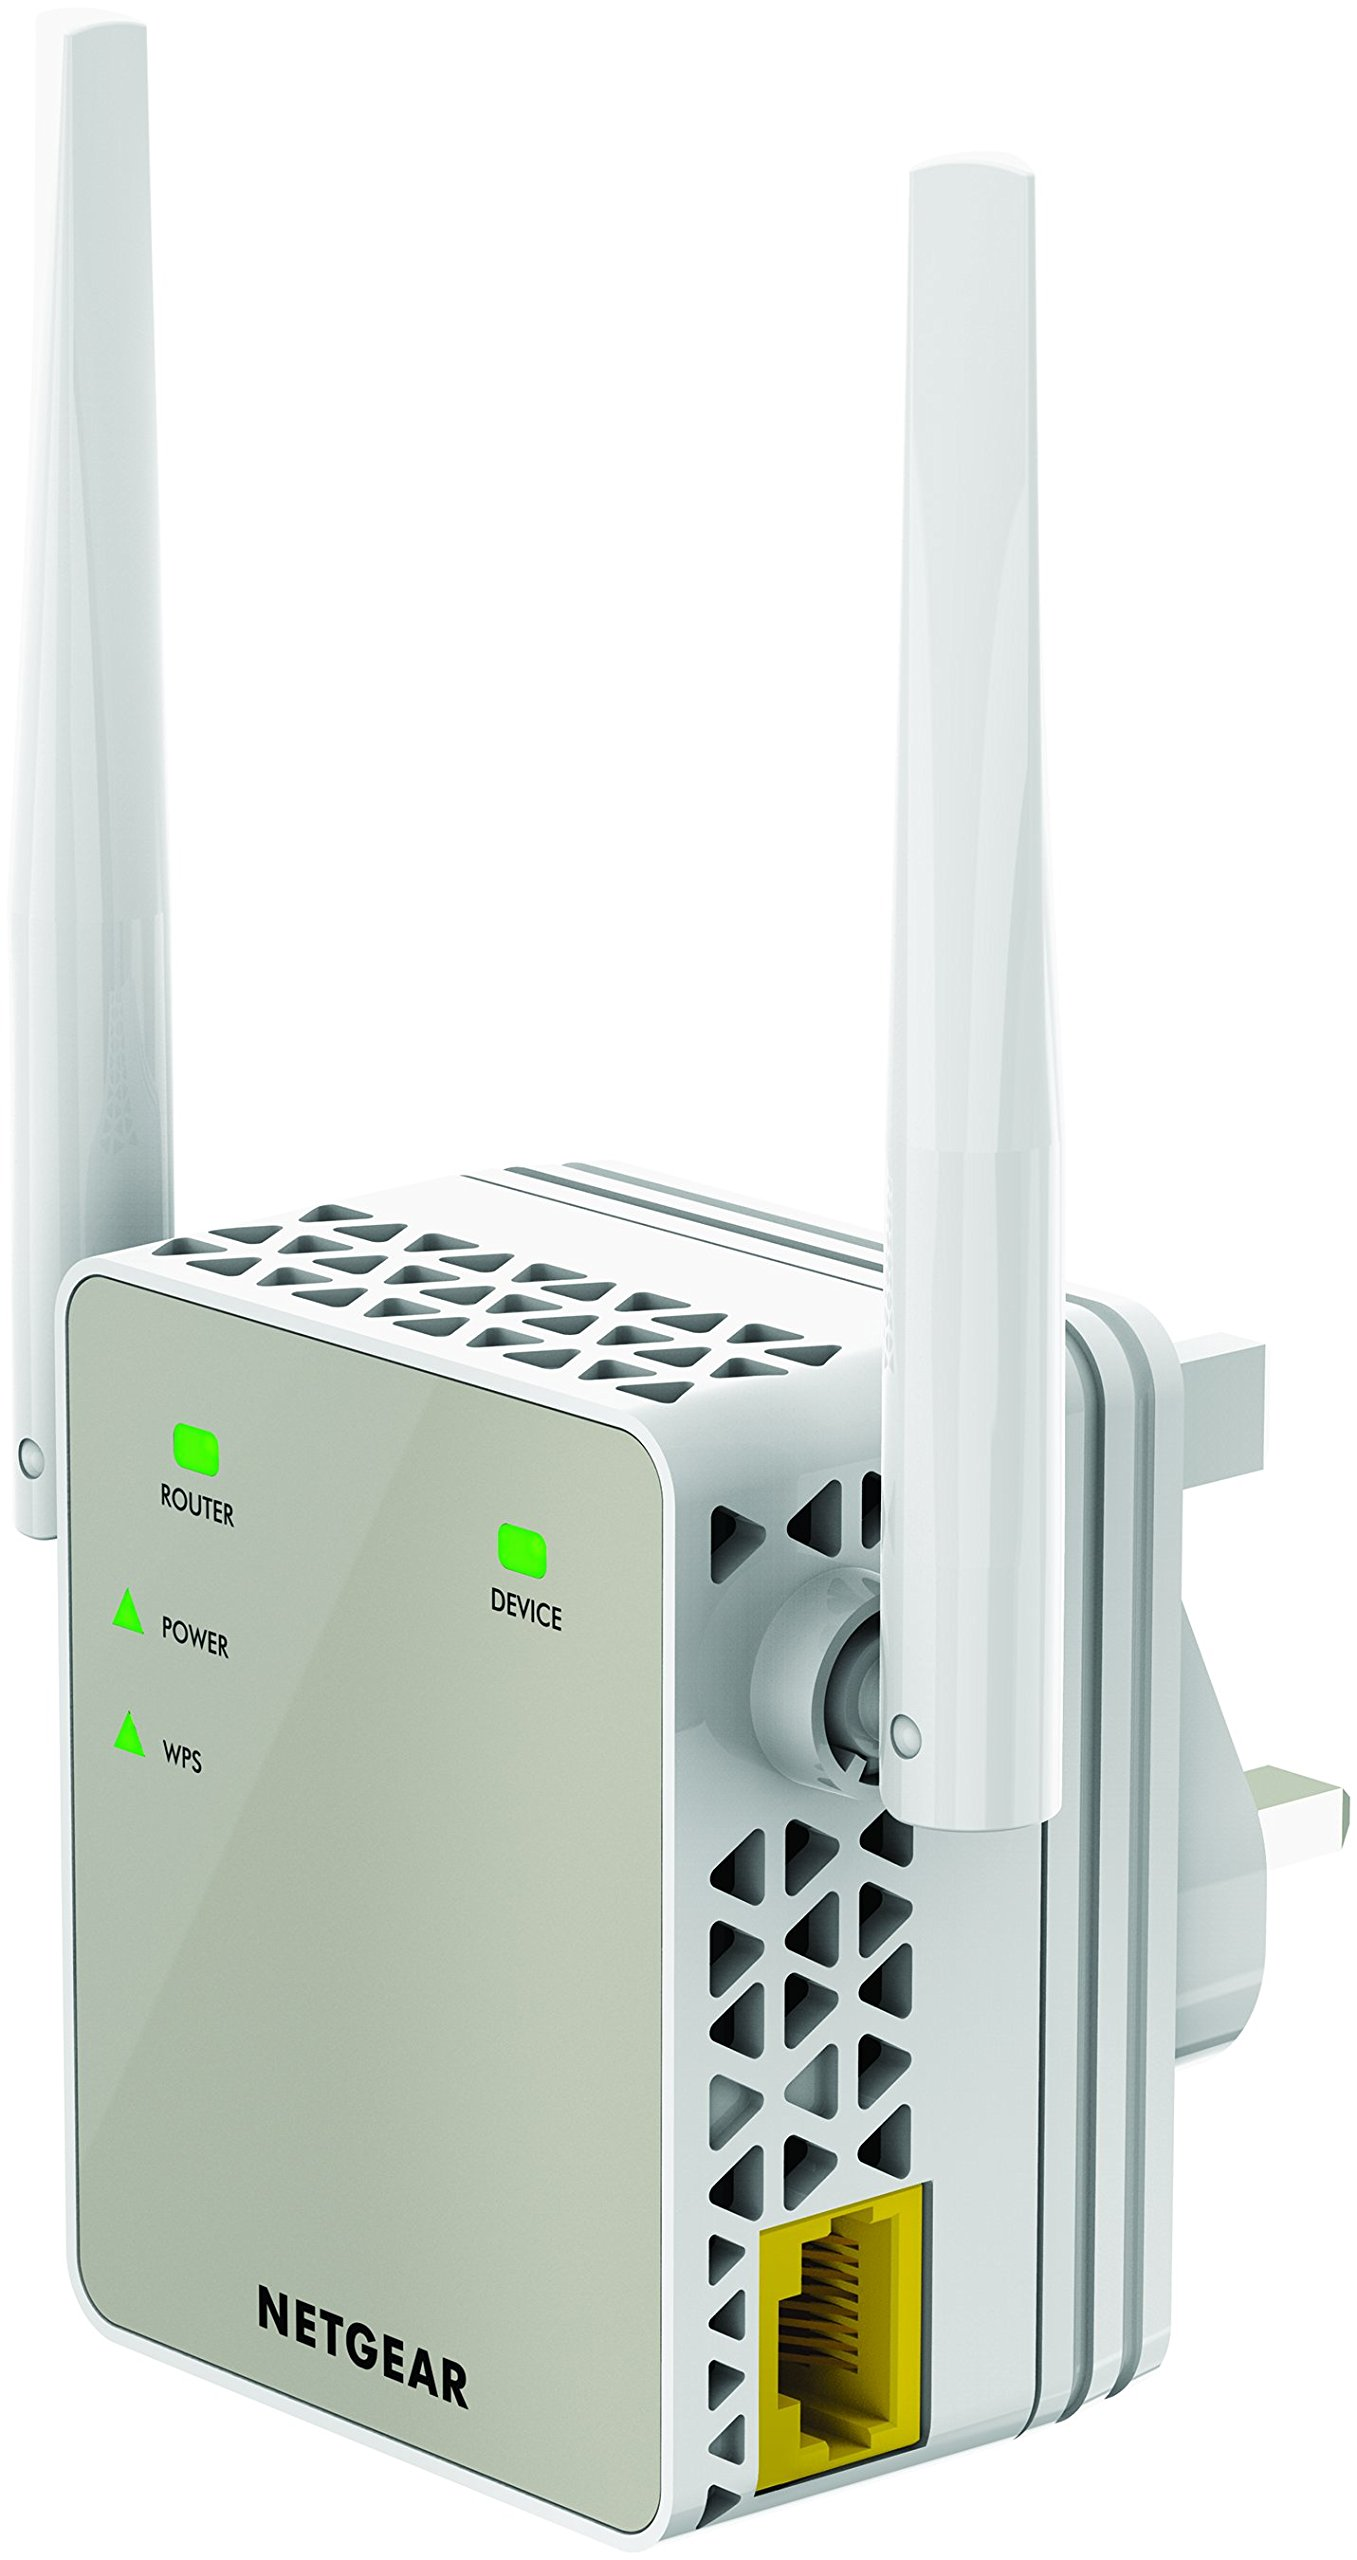 Increase the Wi-Fi range in your home or office with these extenders